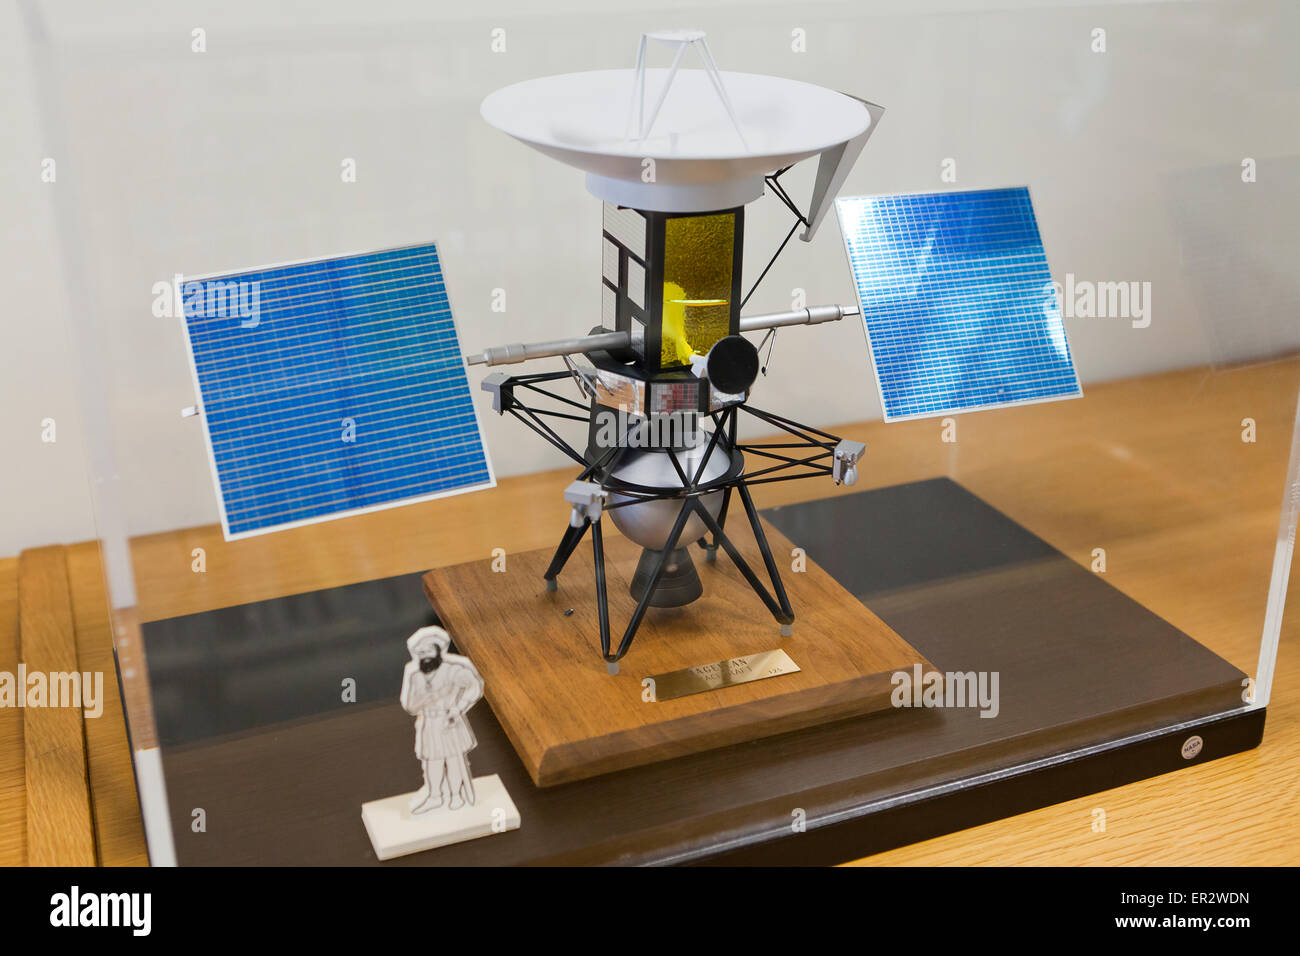 Magellan spacecraft model on table - USA - Stock Image